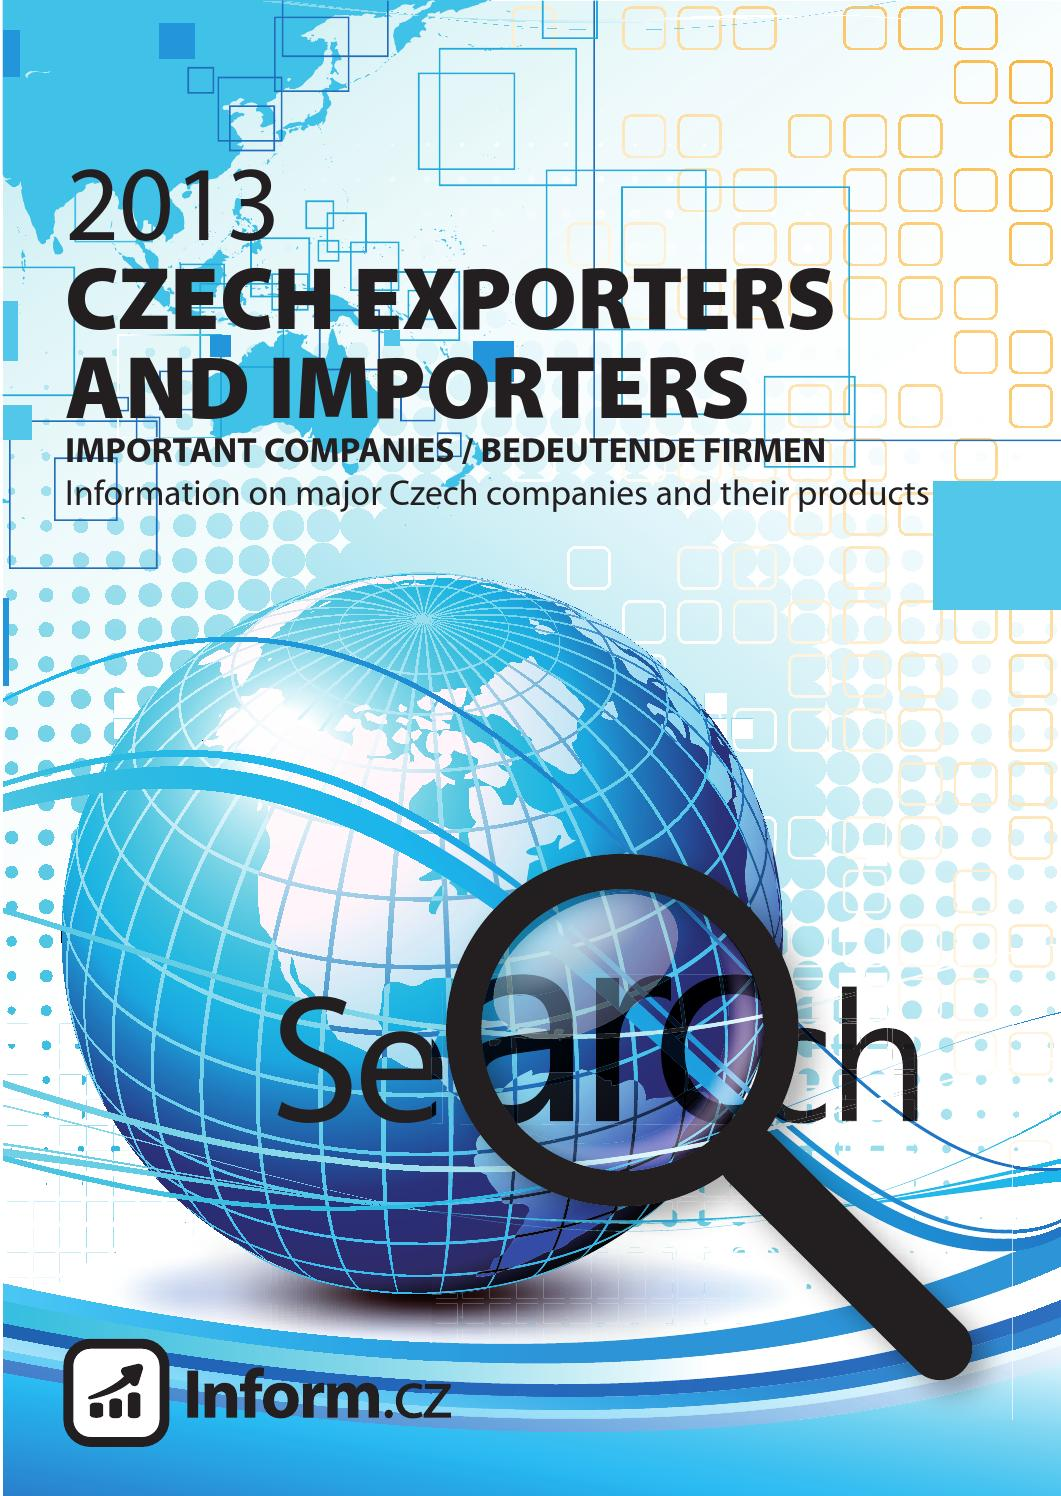 Czech exporters and importers by Mediatel spol. s r.o. - issuu